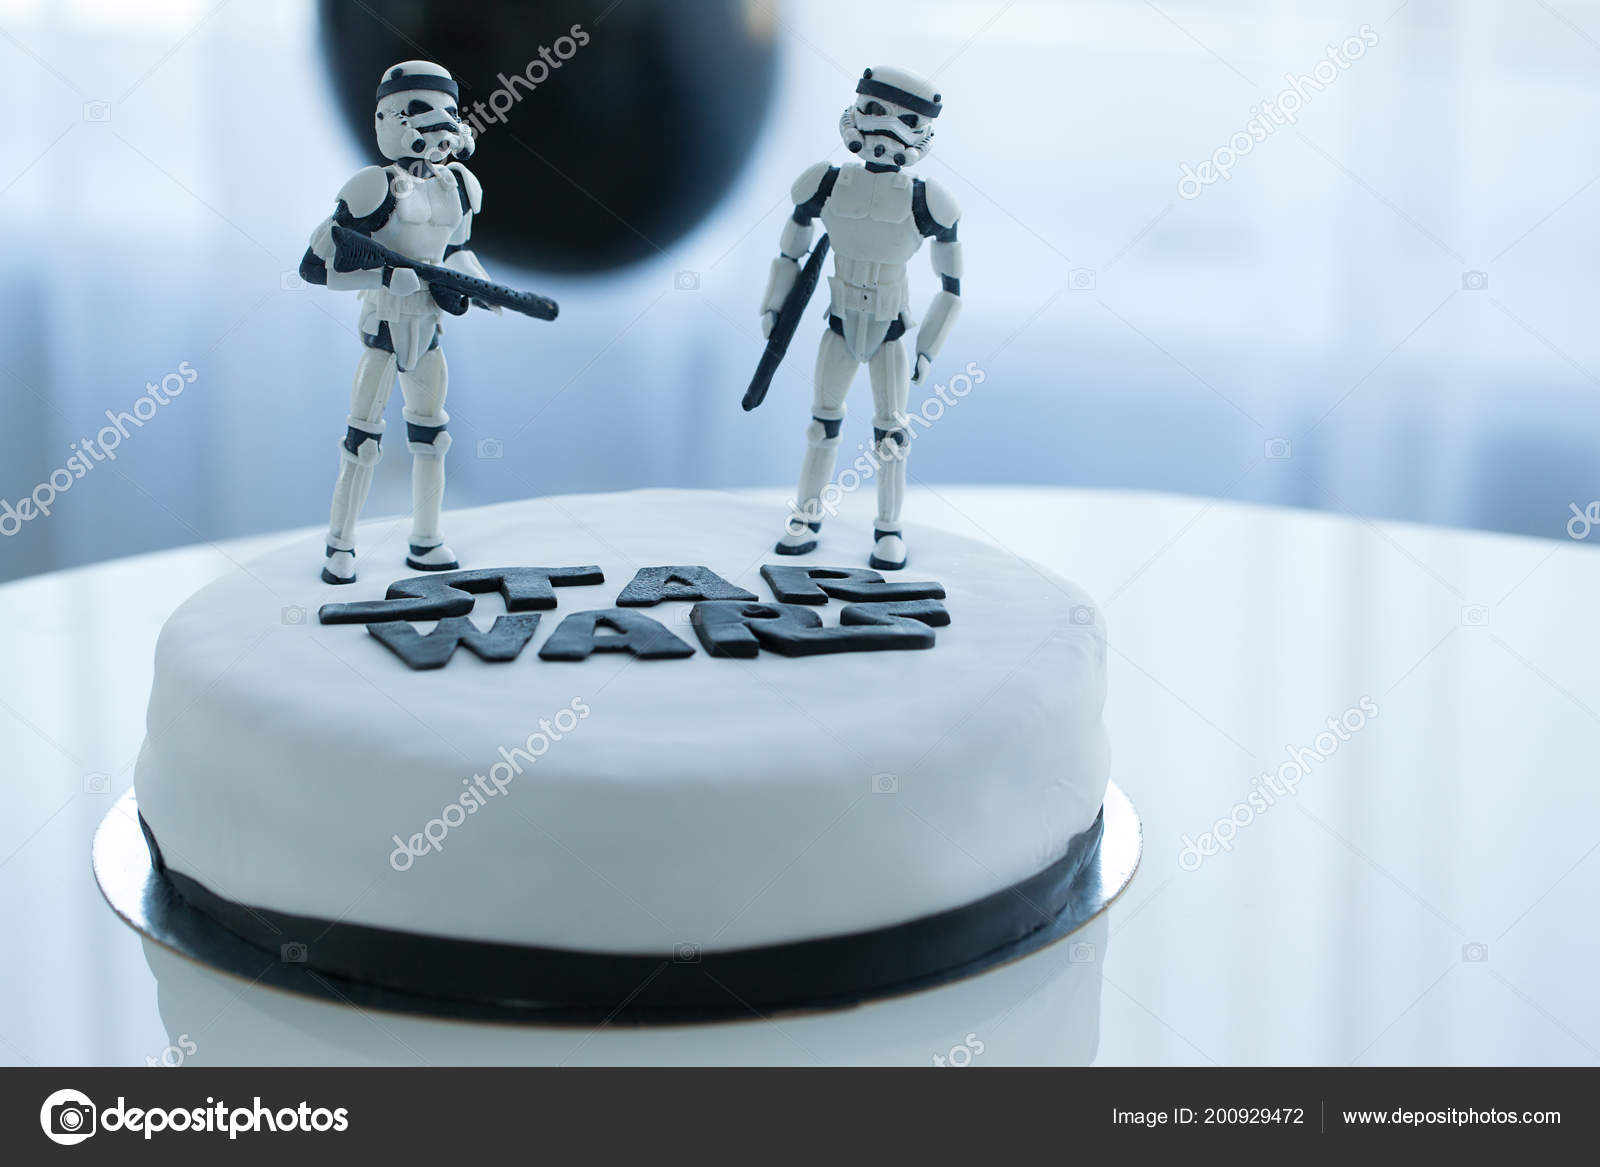 Phenomenal Images Star Wars Birthday Cakes Minsk Belarus 18 January Funny Birthday Cards Online Overcheapnameinfo